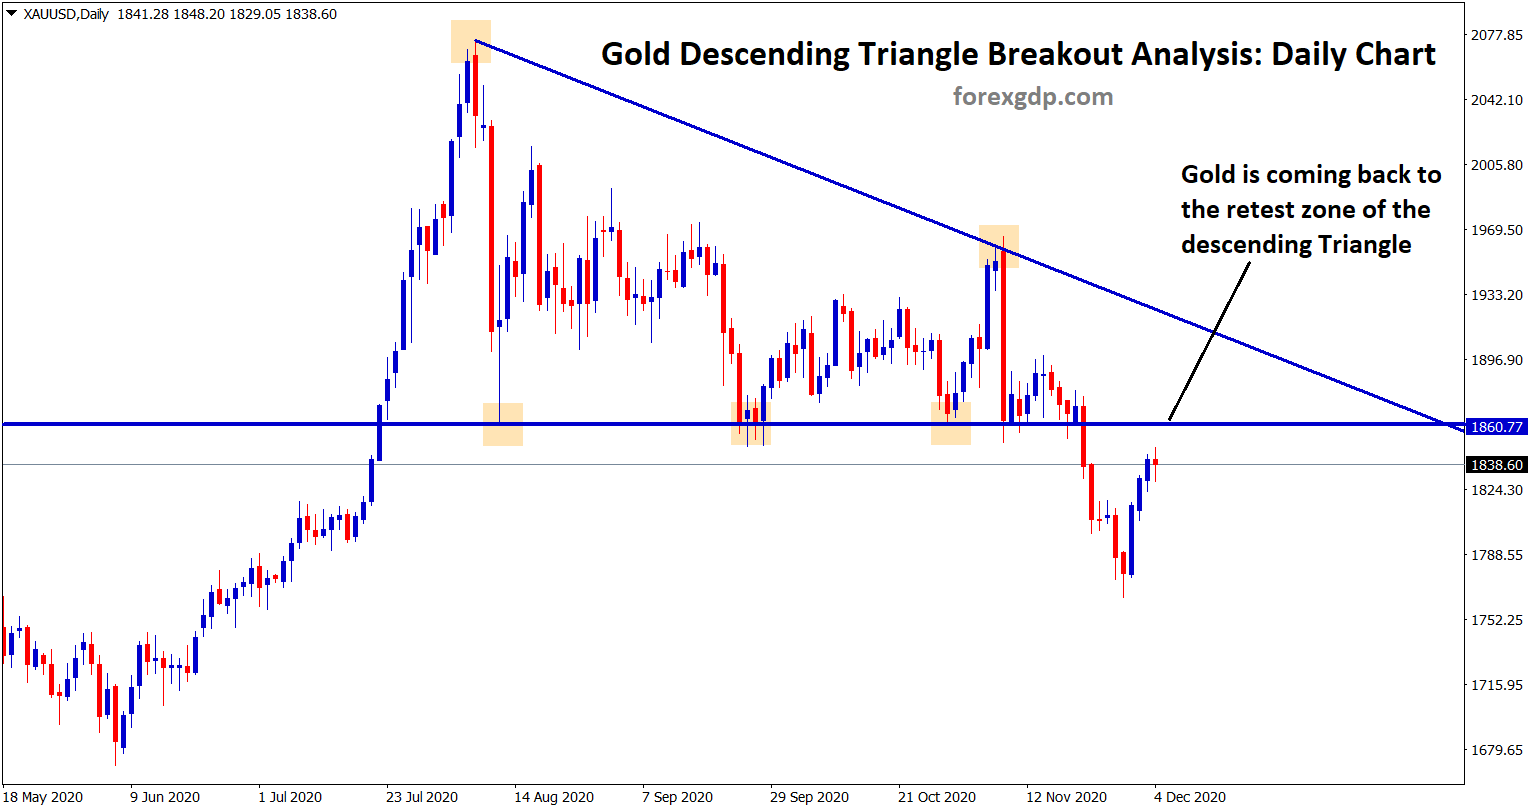 gold is coming back to the retest zone of the descending triangle